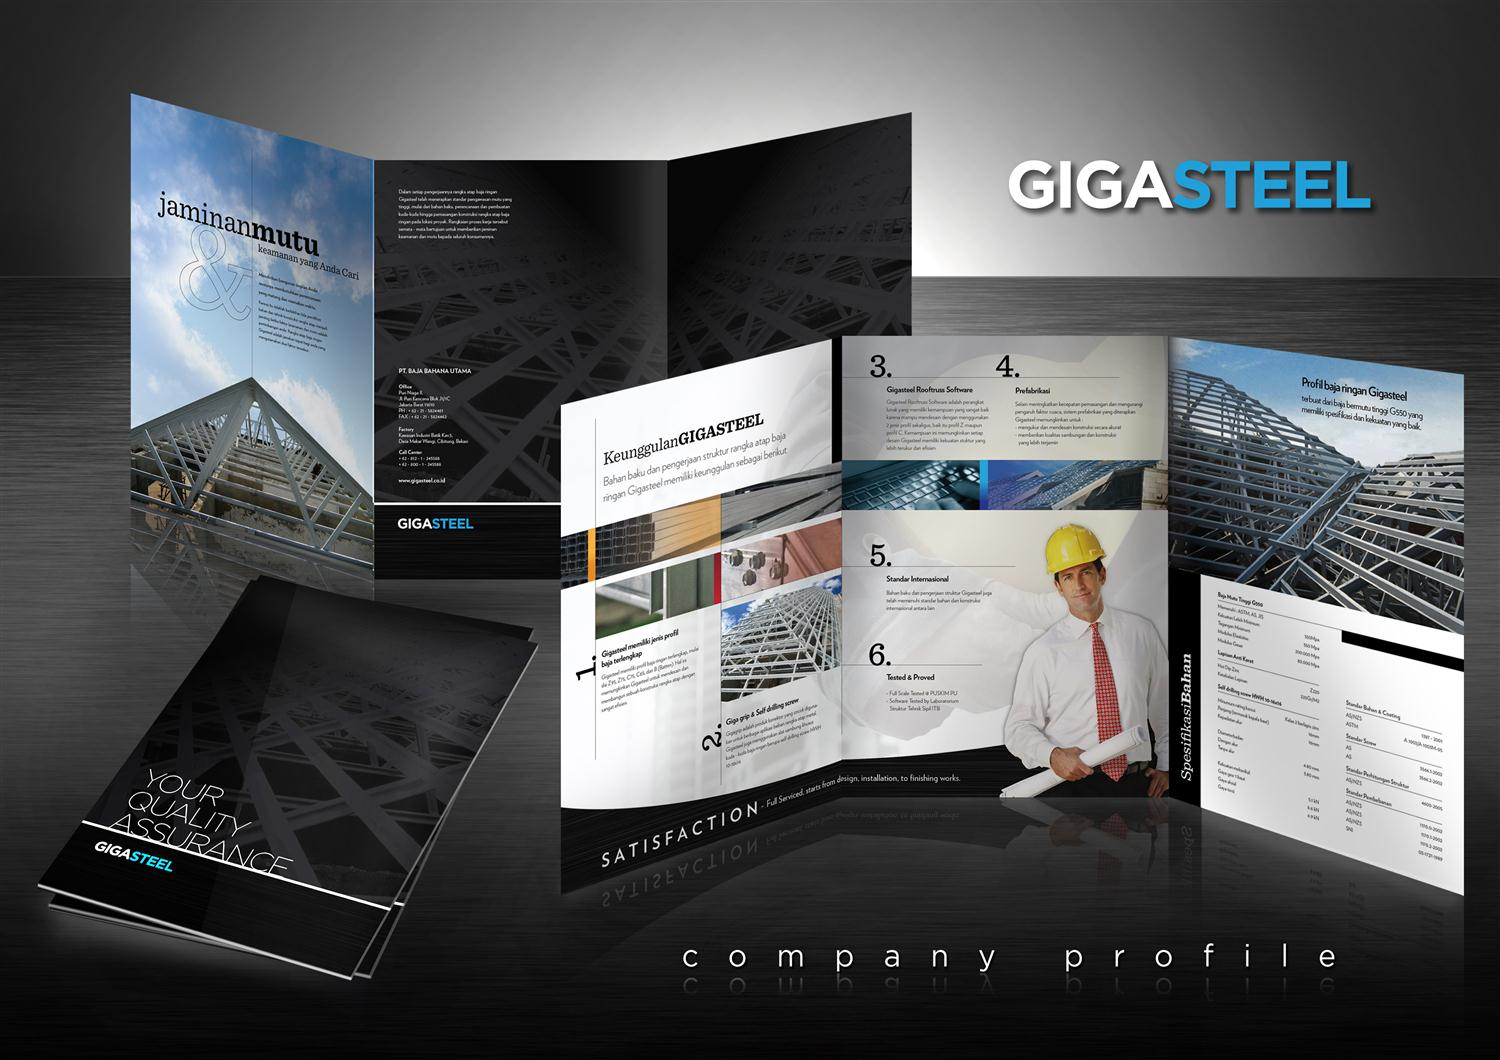 Gigasteel company profile nikko purnama for The design company